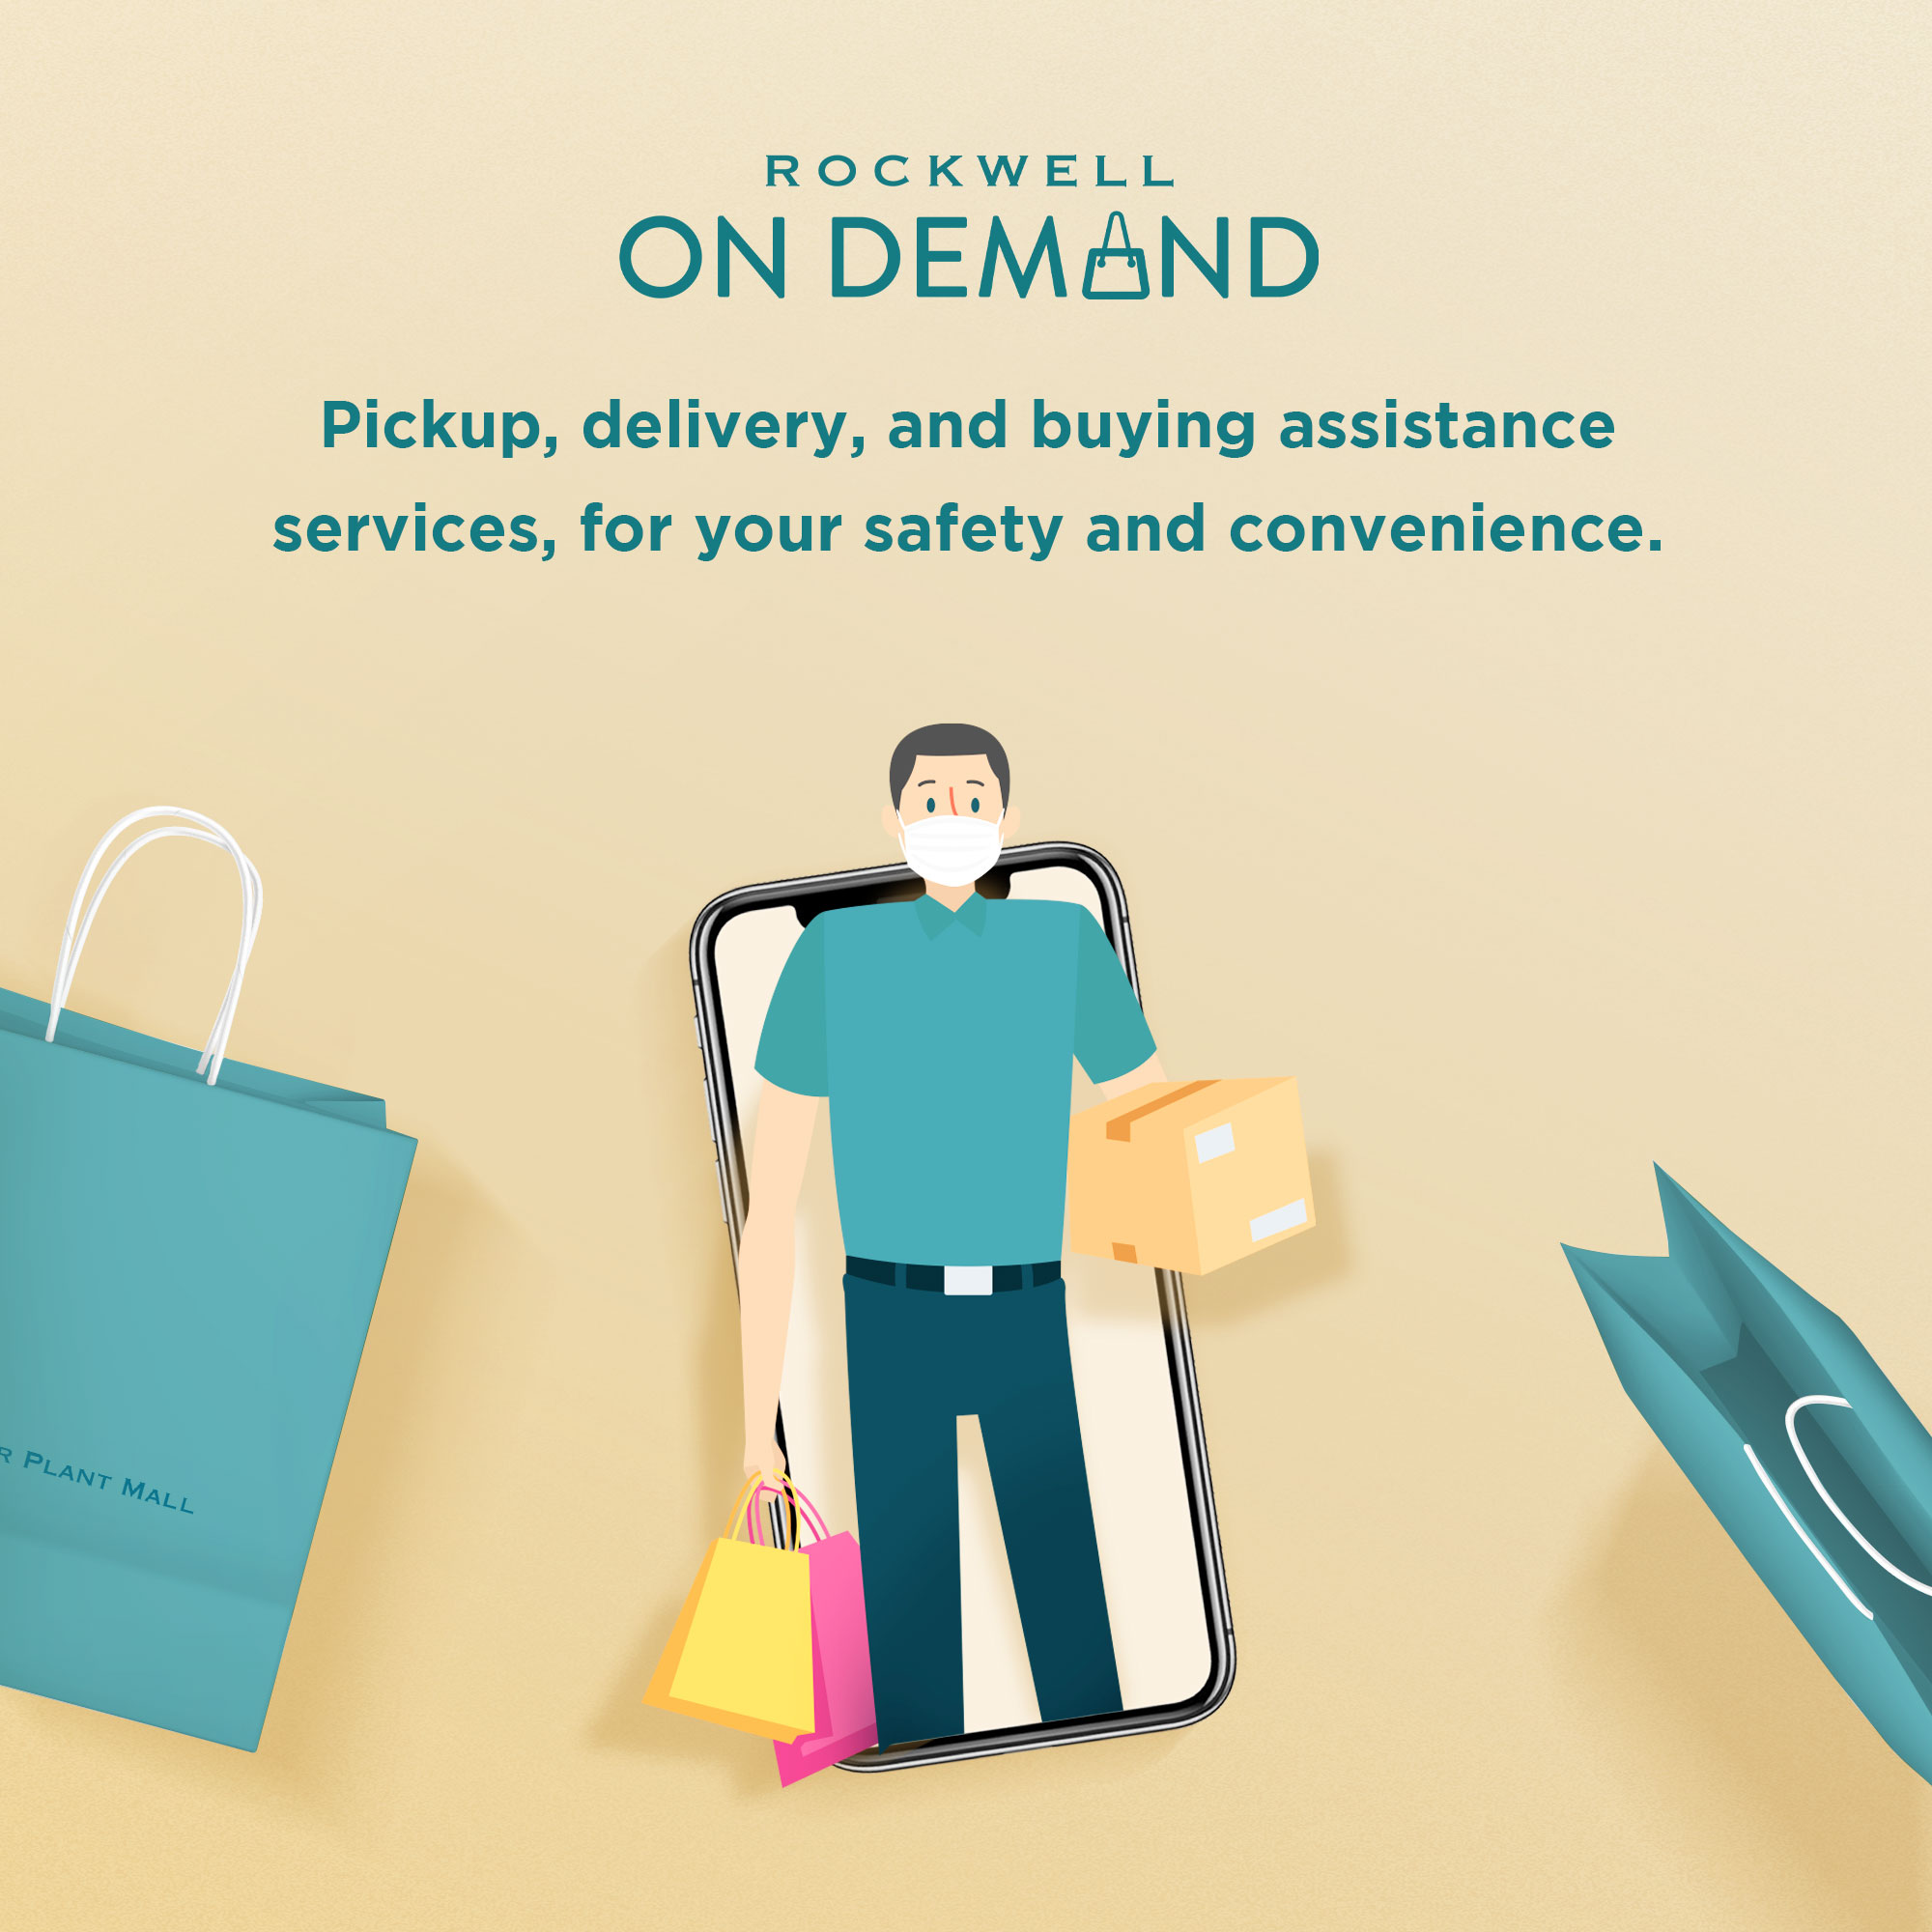 Shop safely with Rockwell on Demand